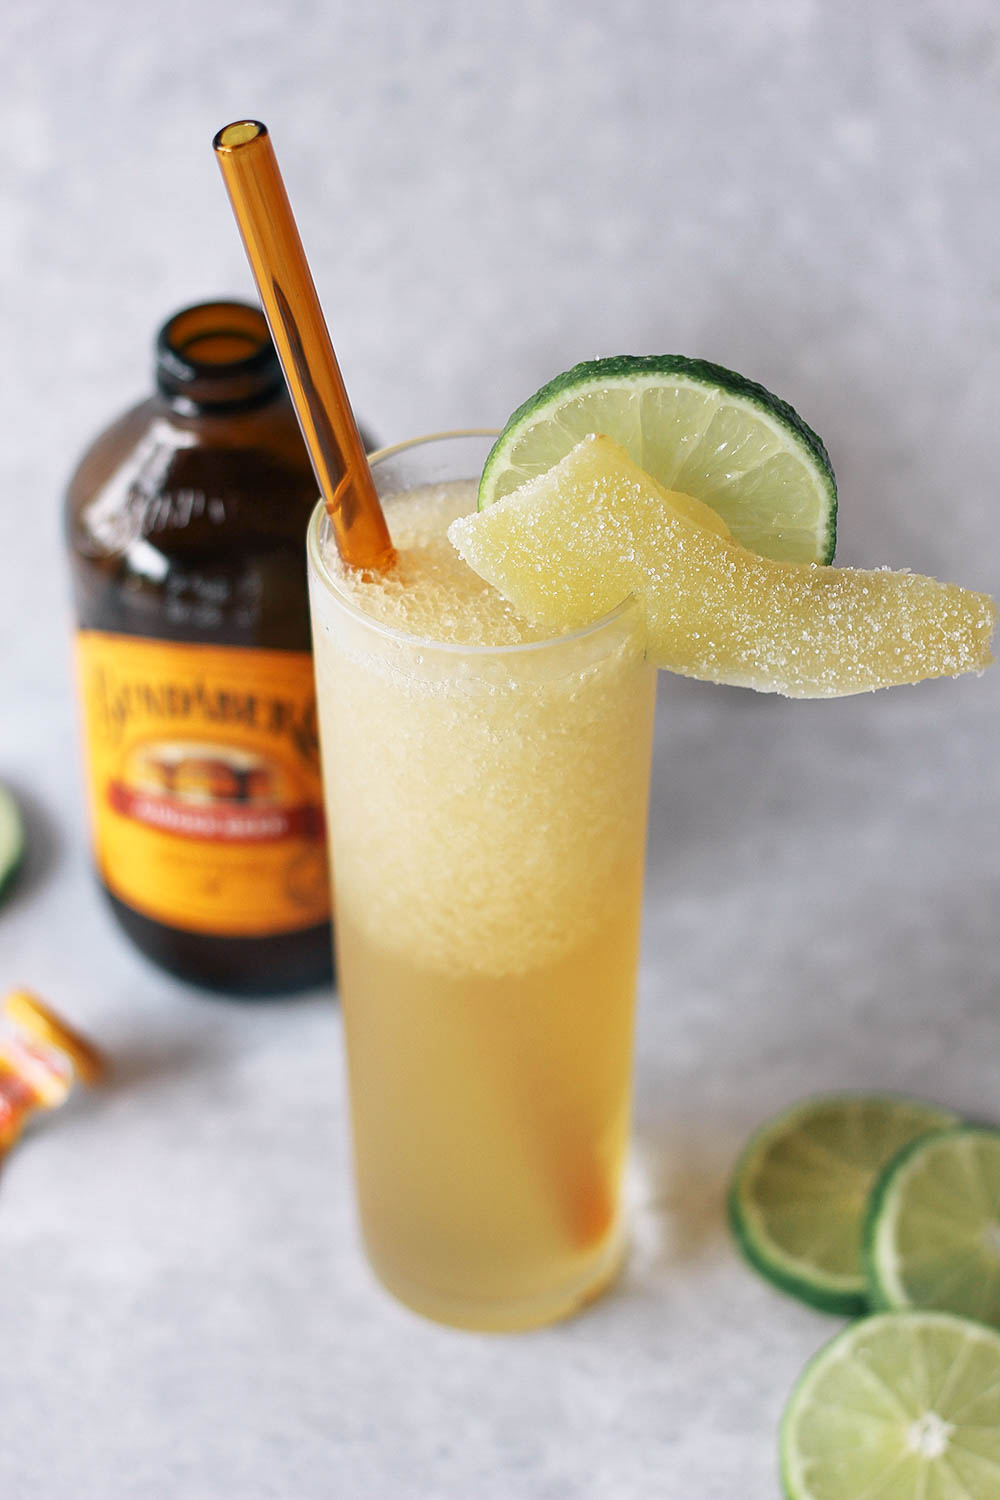 Toast to the end of summer with this frozen take on the classic dark and stormy cocktail. Get the full recipe at HomemadeBanana.com #cheers #happyhour #rum